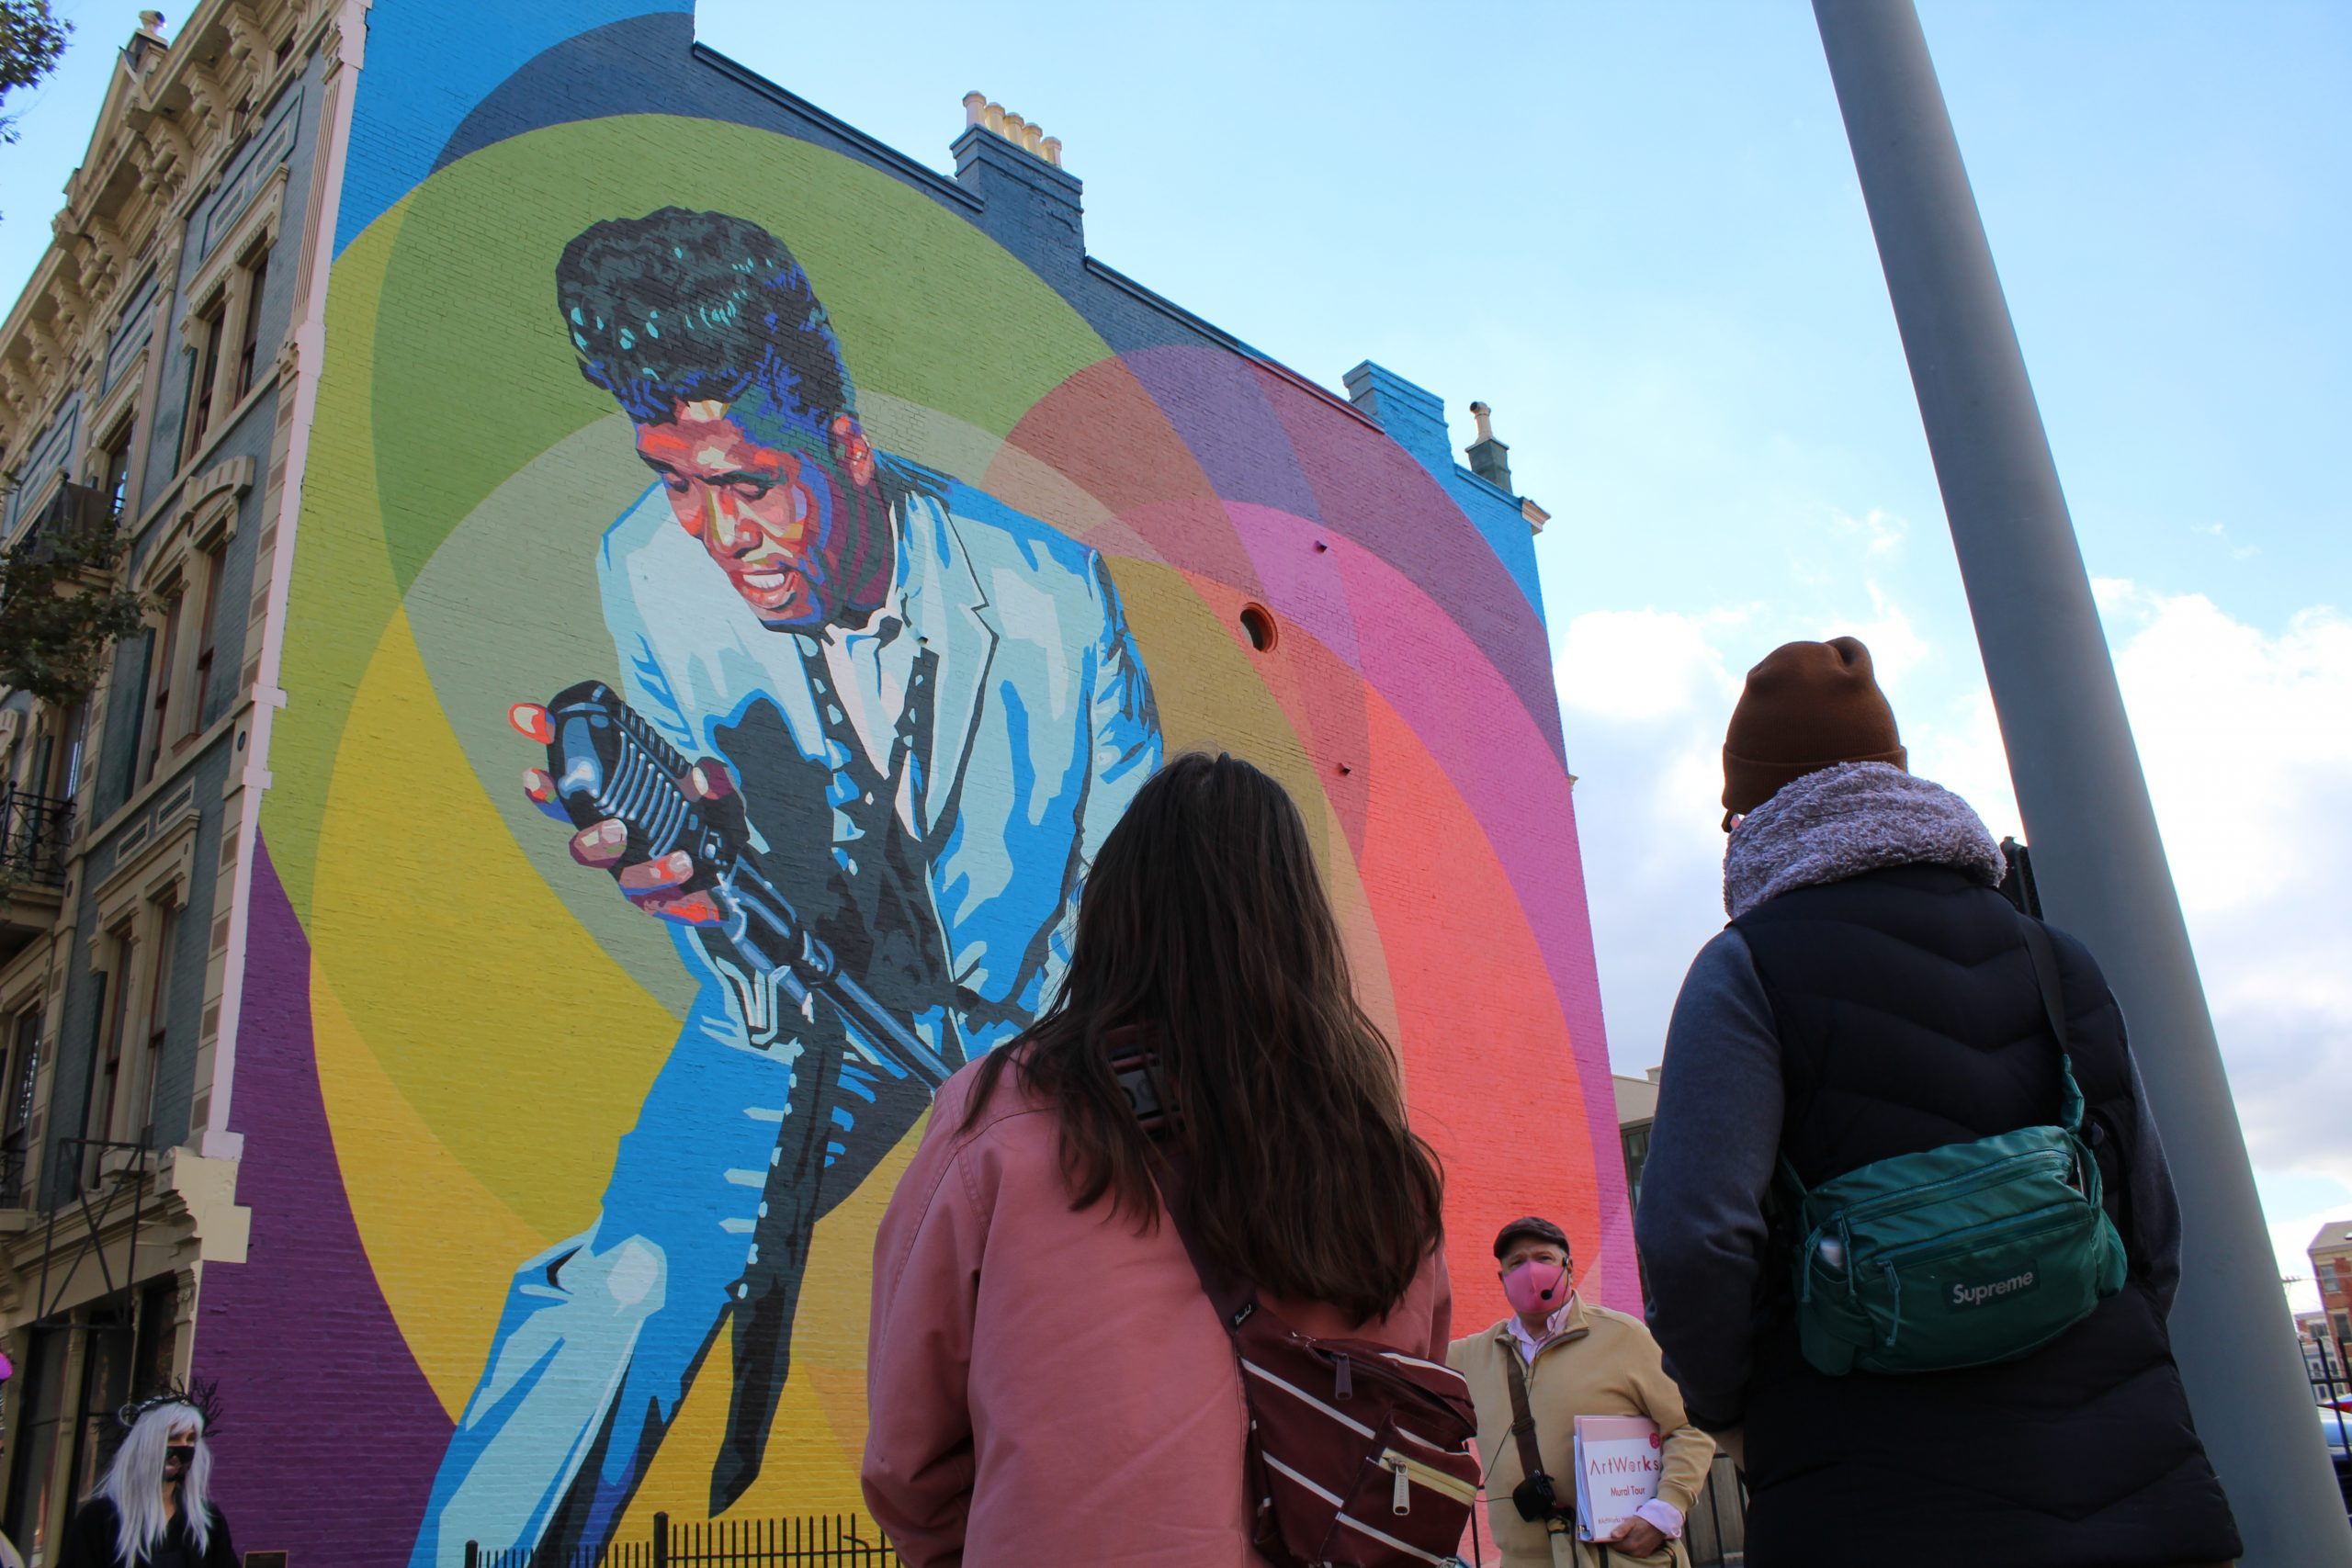 Small group of three in front of the Mr. Dynamite mural, honoring James Brown. Mural shows Brown singing into a vintage mic surrounded by colorful spotlight circles.